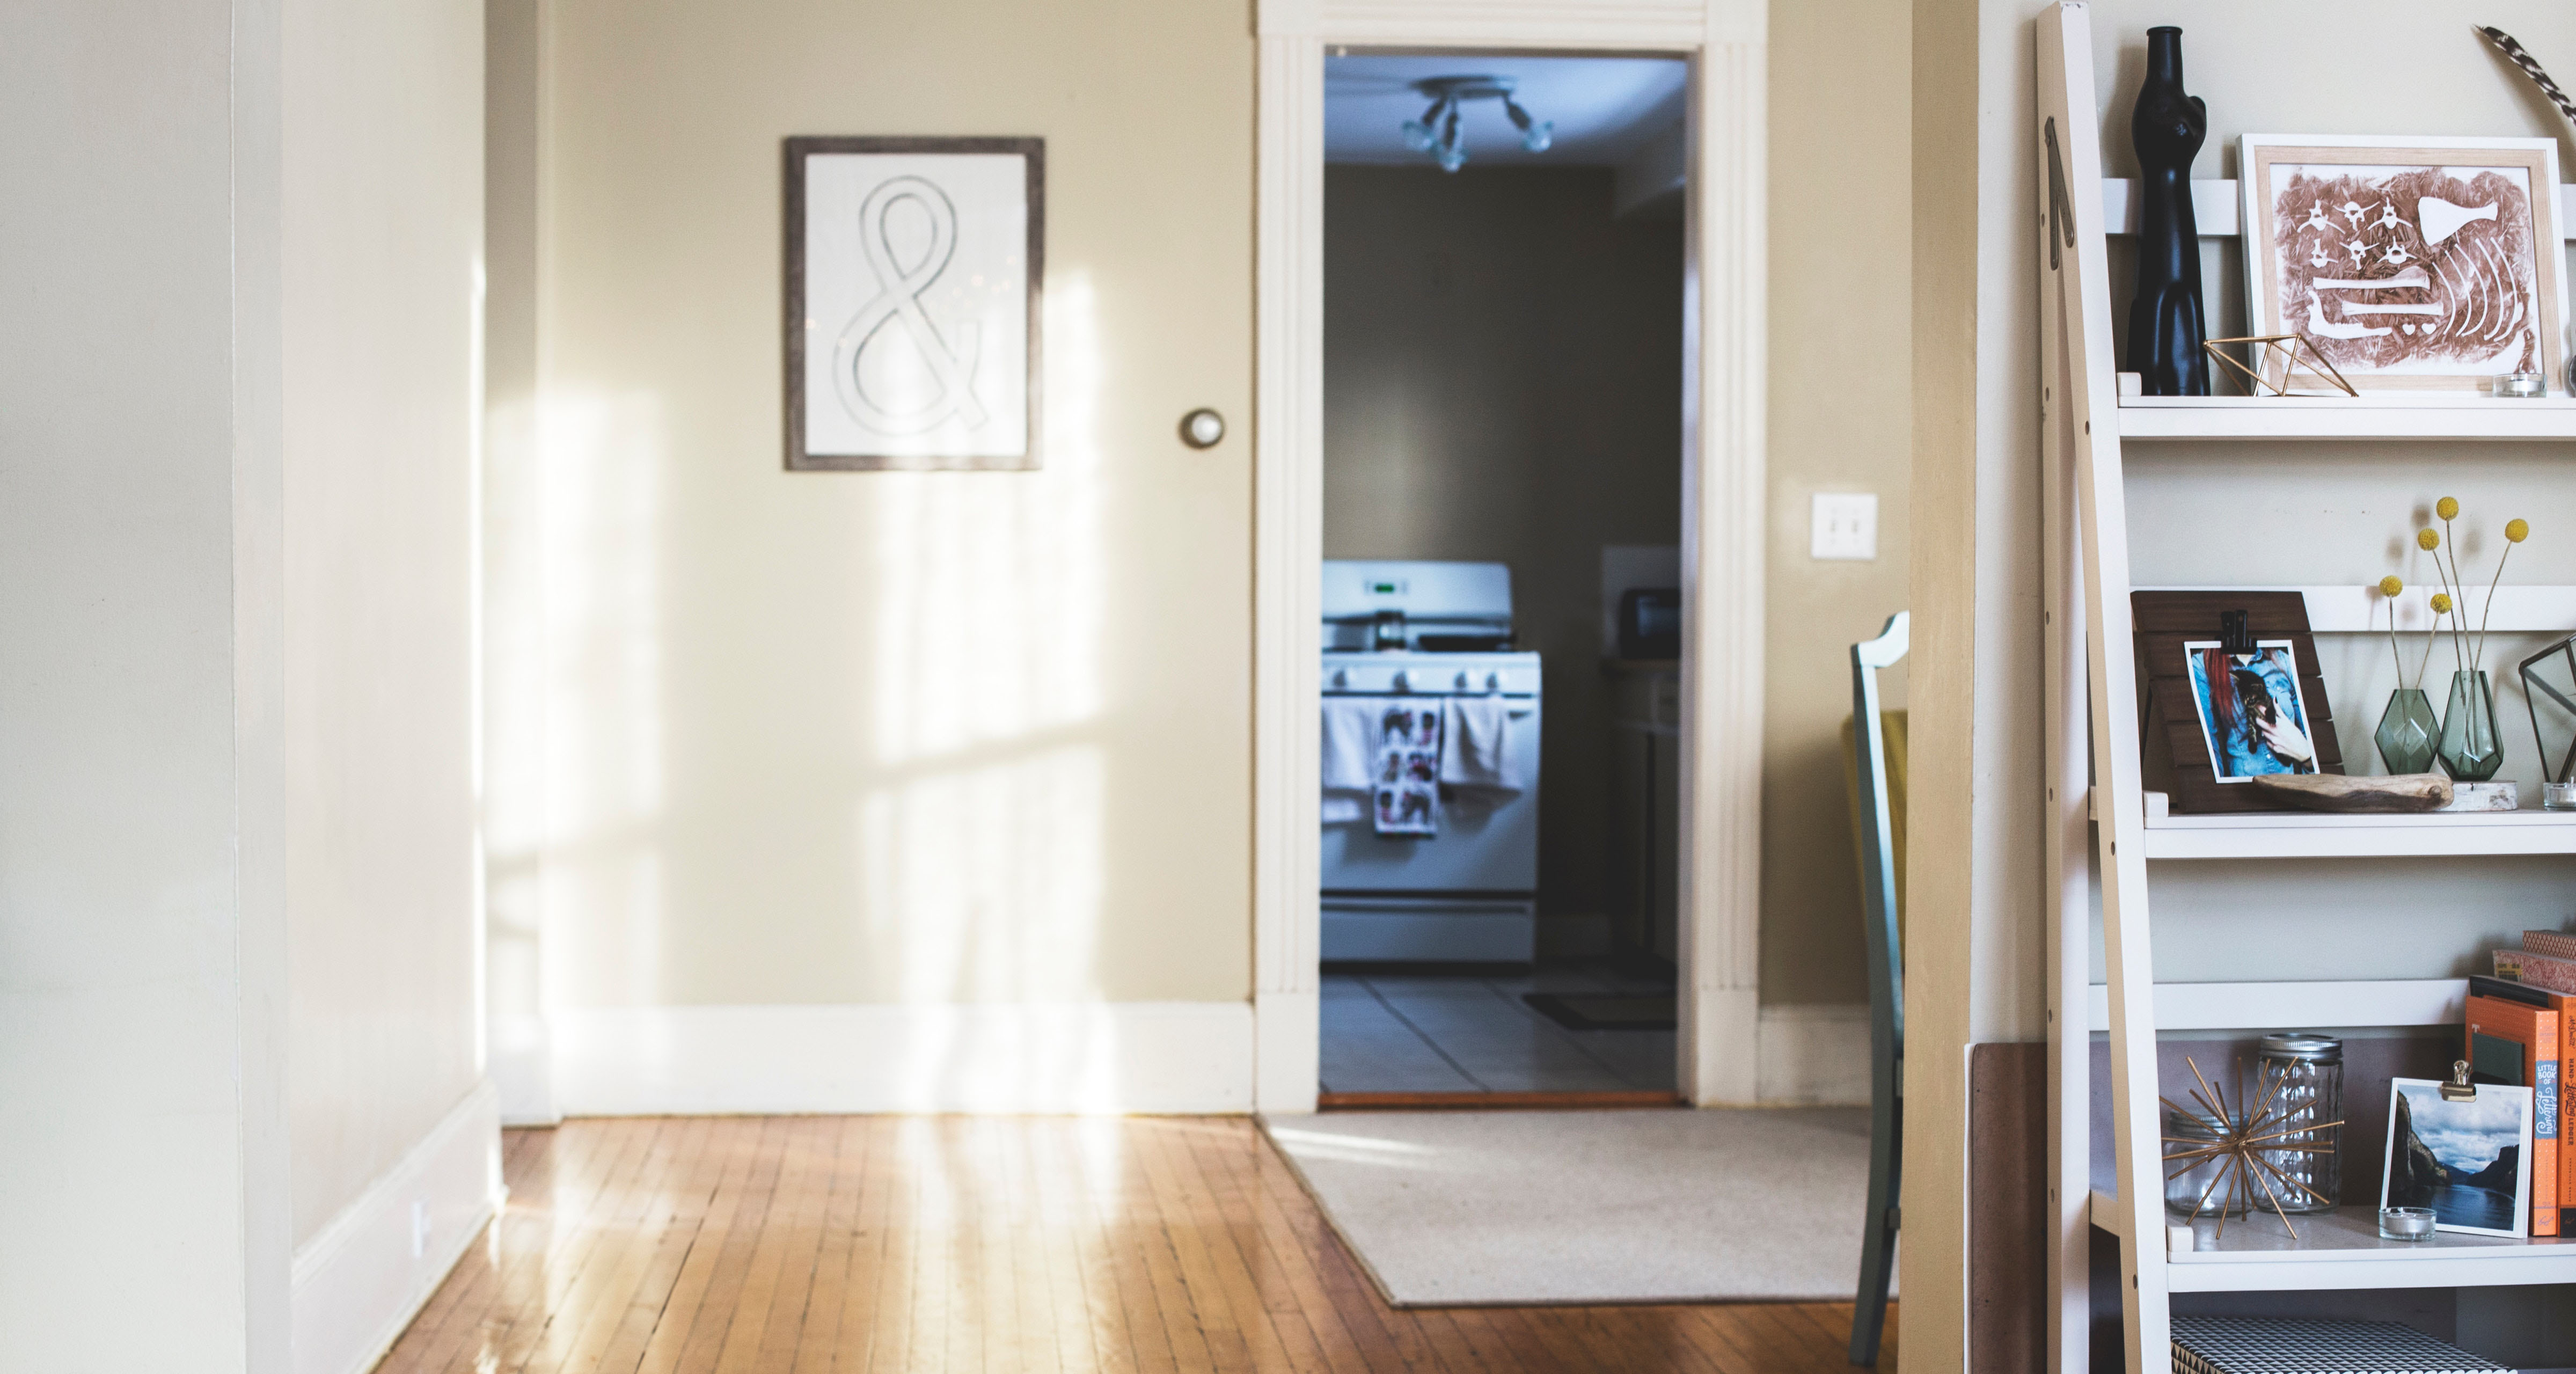 Image result for Handyman Services: Get a Professional to Fix Any Number of Household Issues